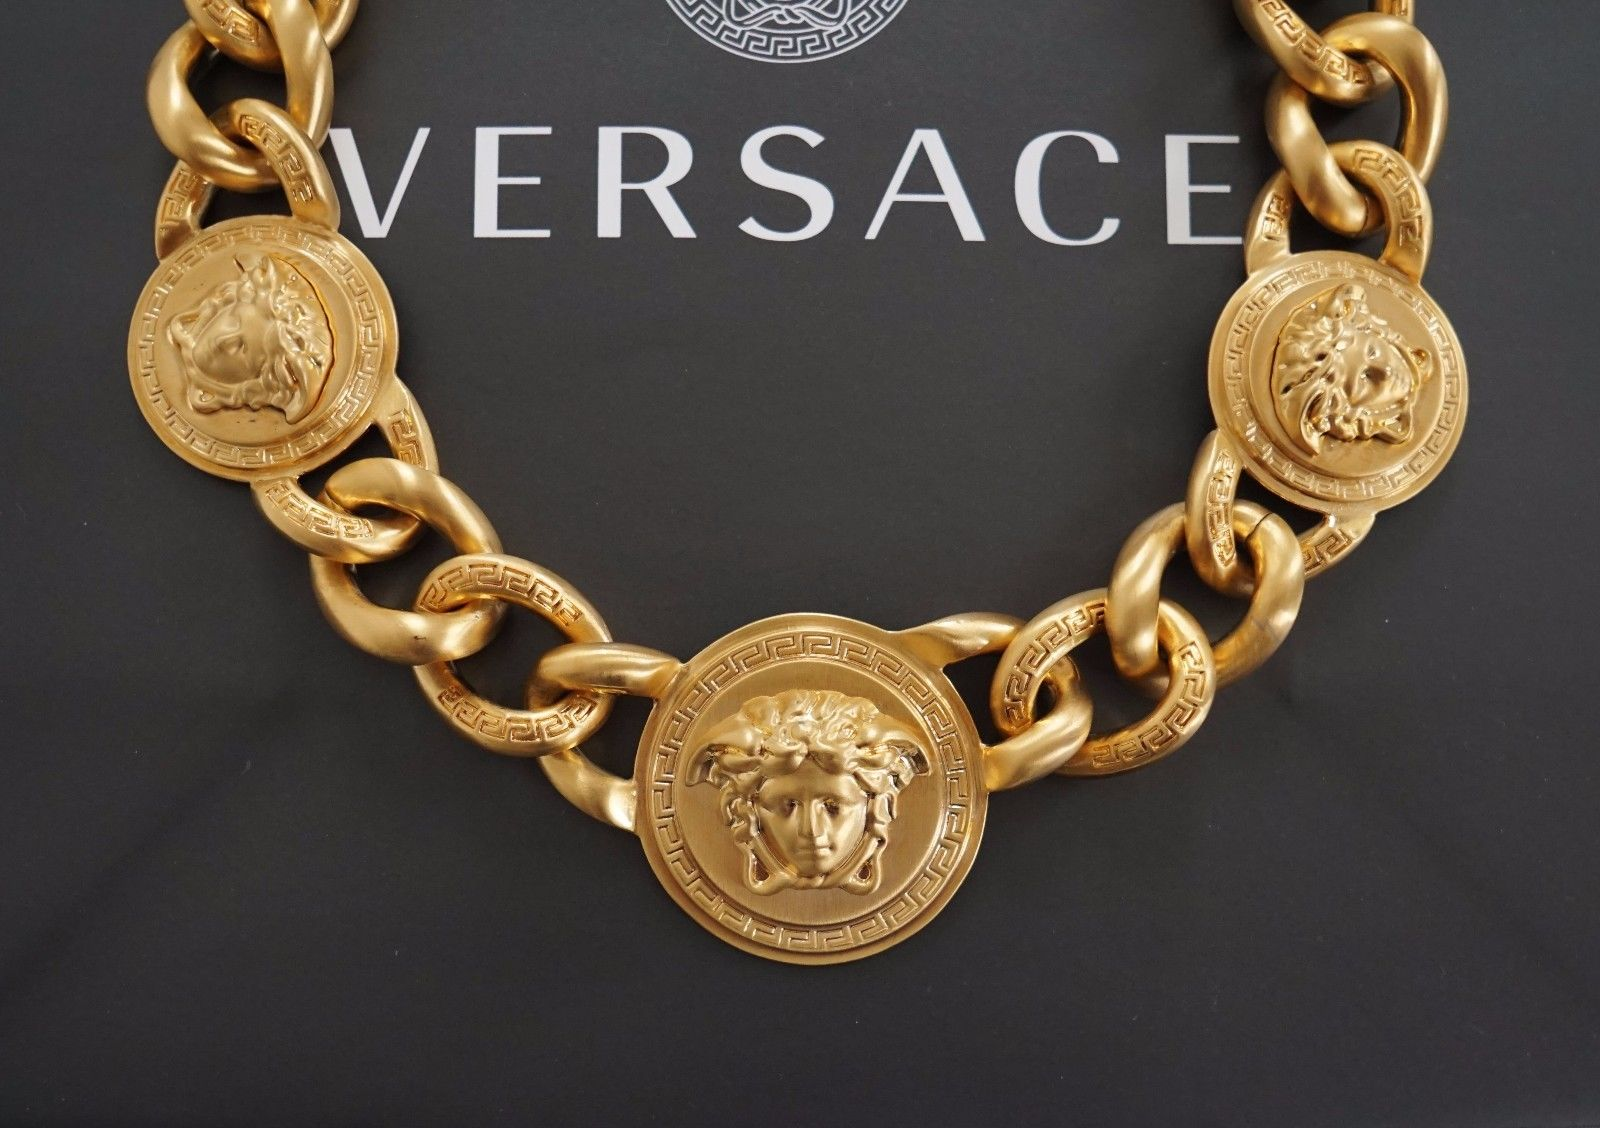 Versace Iconic 3 Medusa medallions chain necklace_1